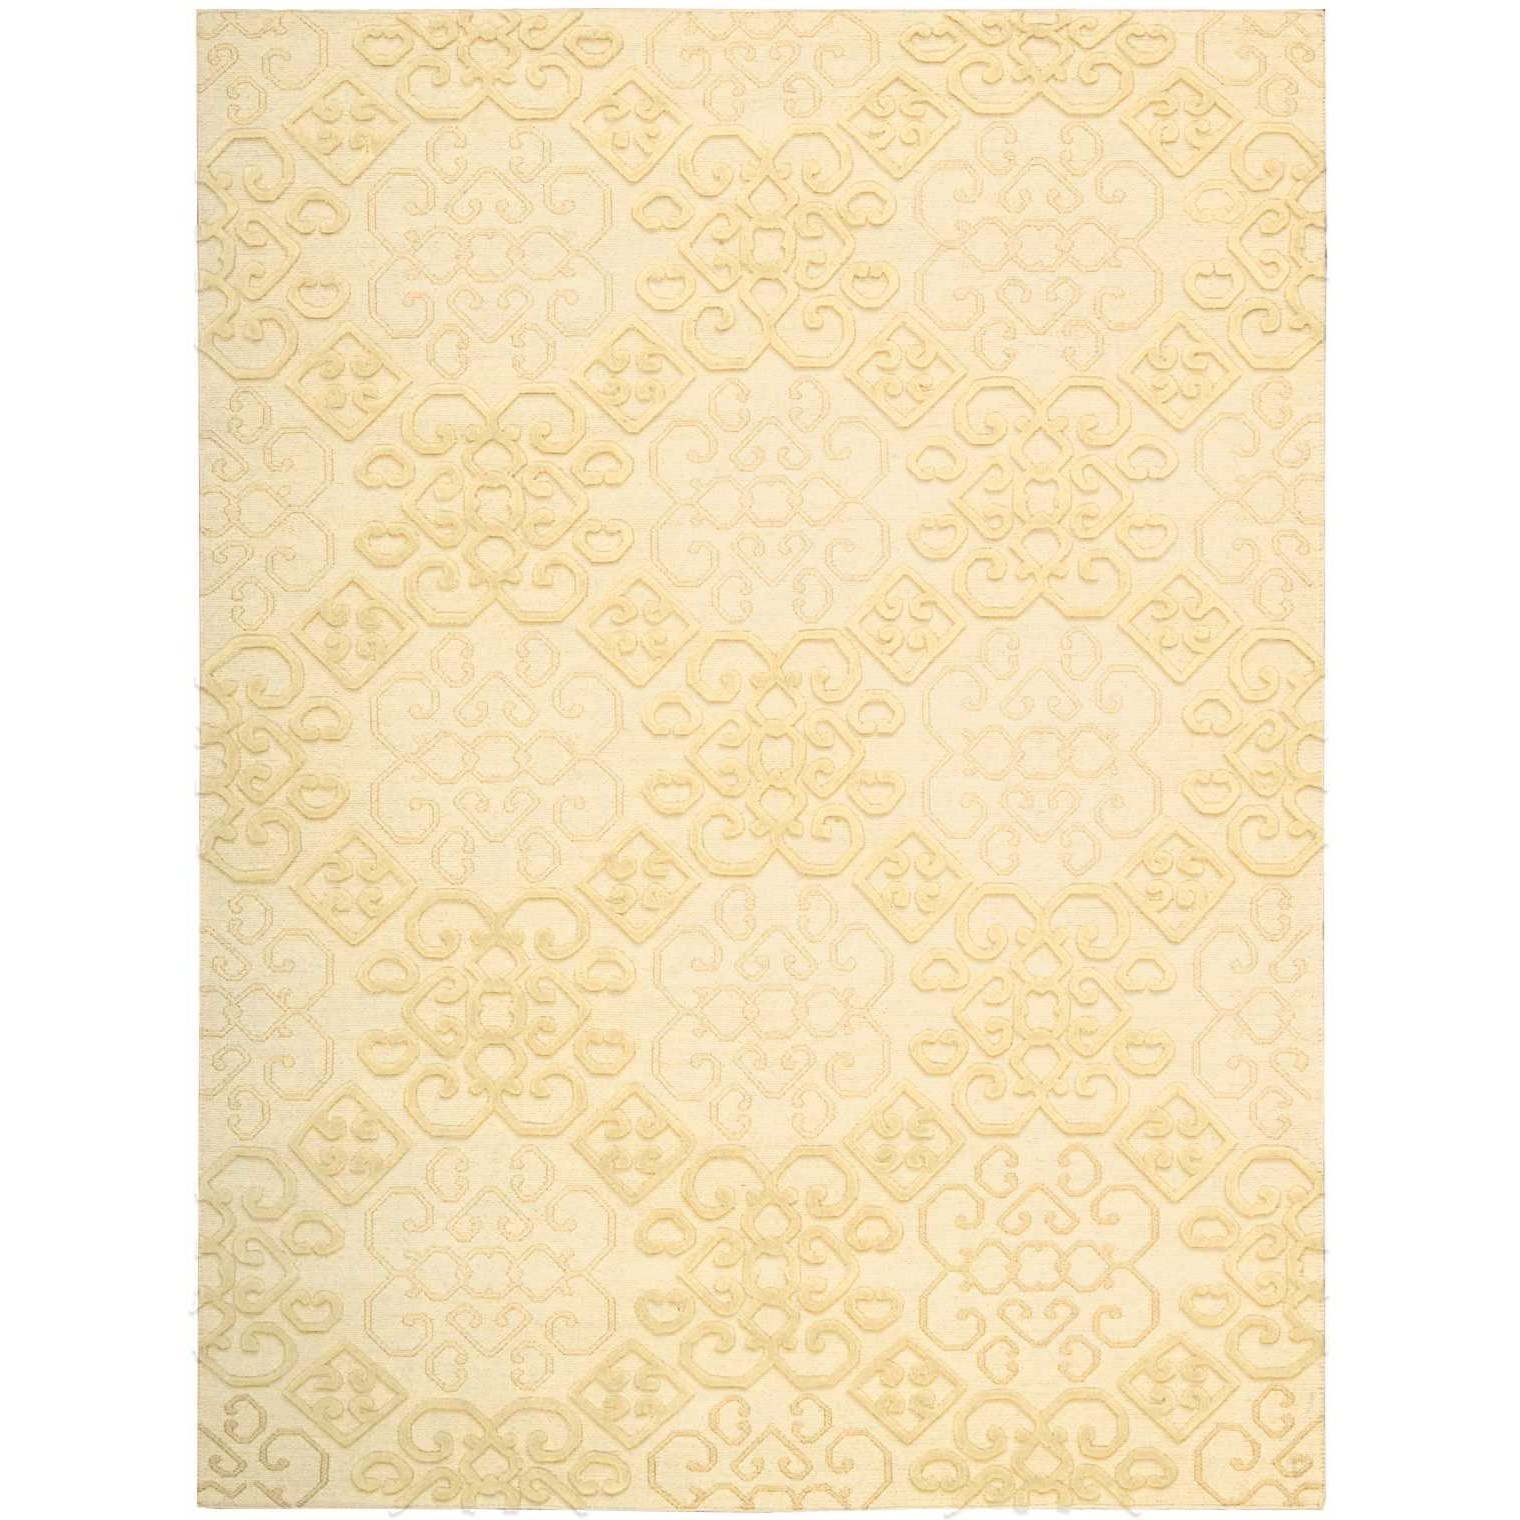 "Ambrose 9'9"" x 13'9"" Linen Rectangle Rug by Nourison at Sprintz Furniture"